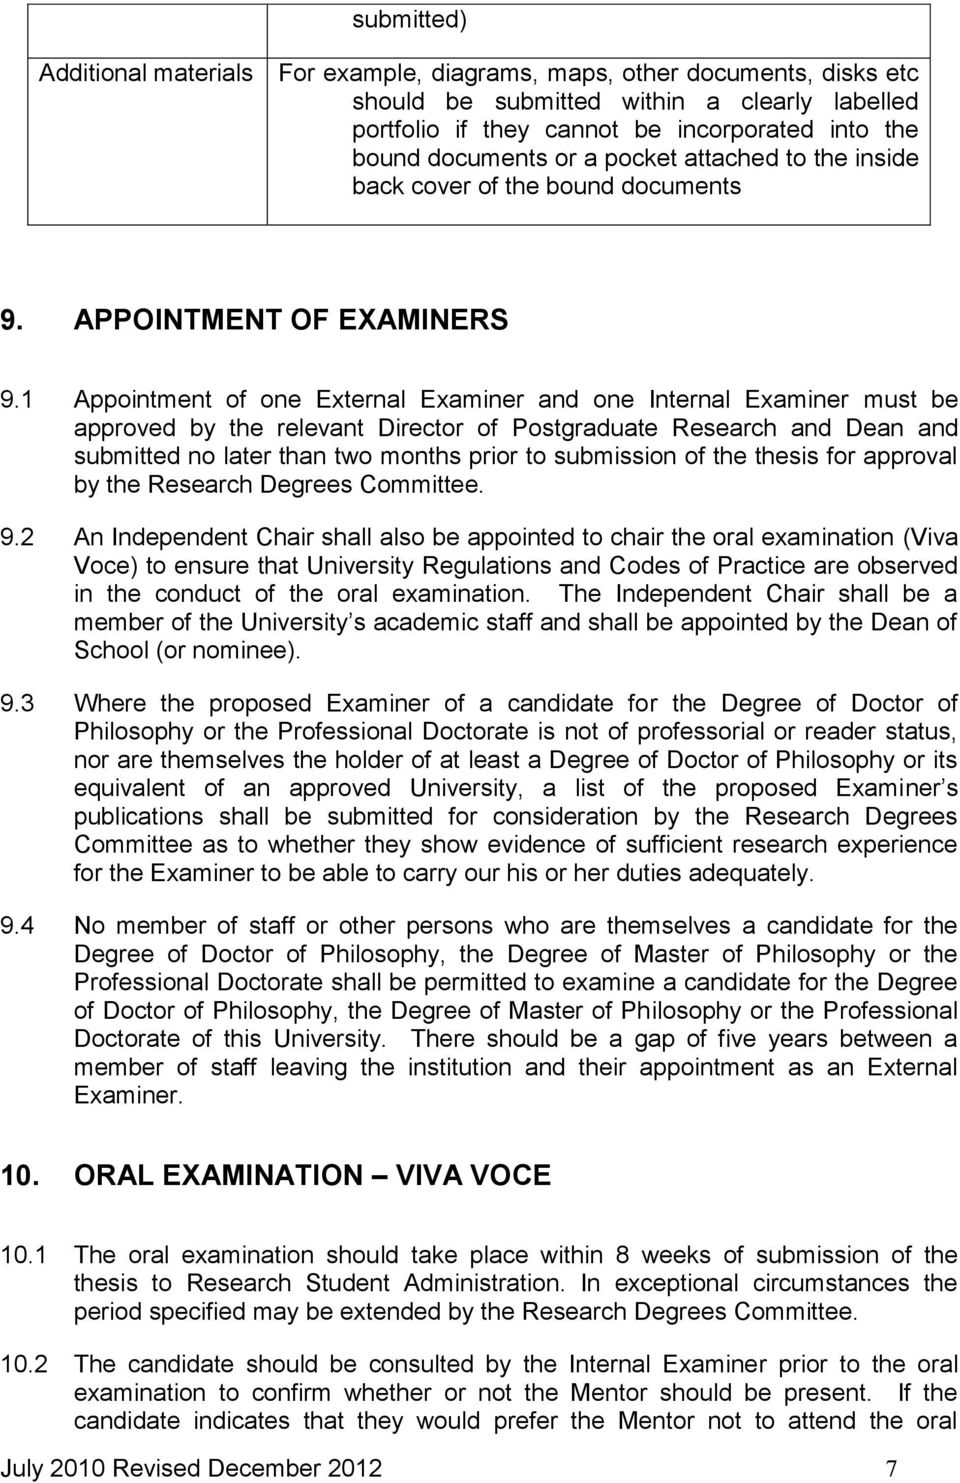 1 Appointment of one External Examiner and one Internal Examiner must be approved by the relevant Director of Postgraduate Research and Dean and submitted no later than two months prior to submission